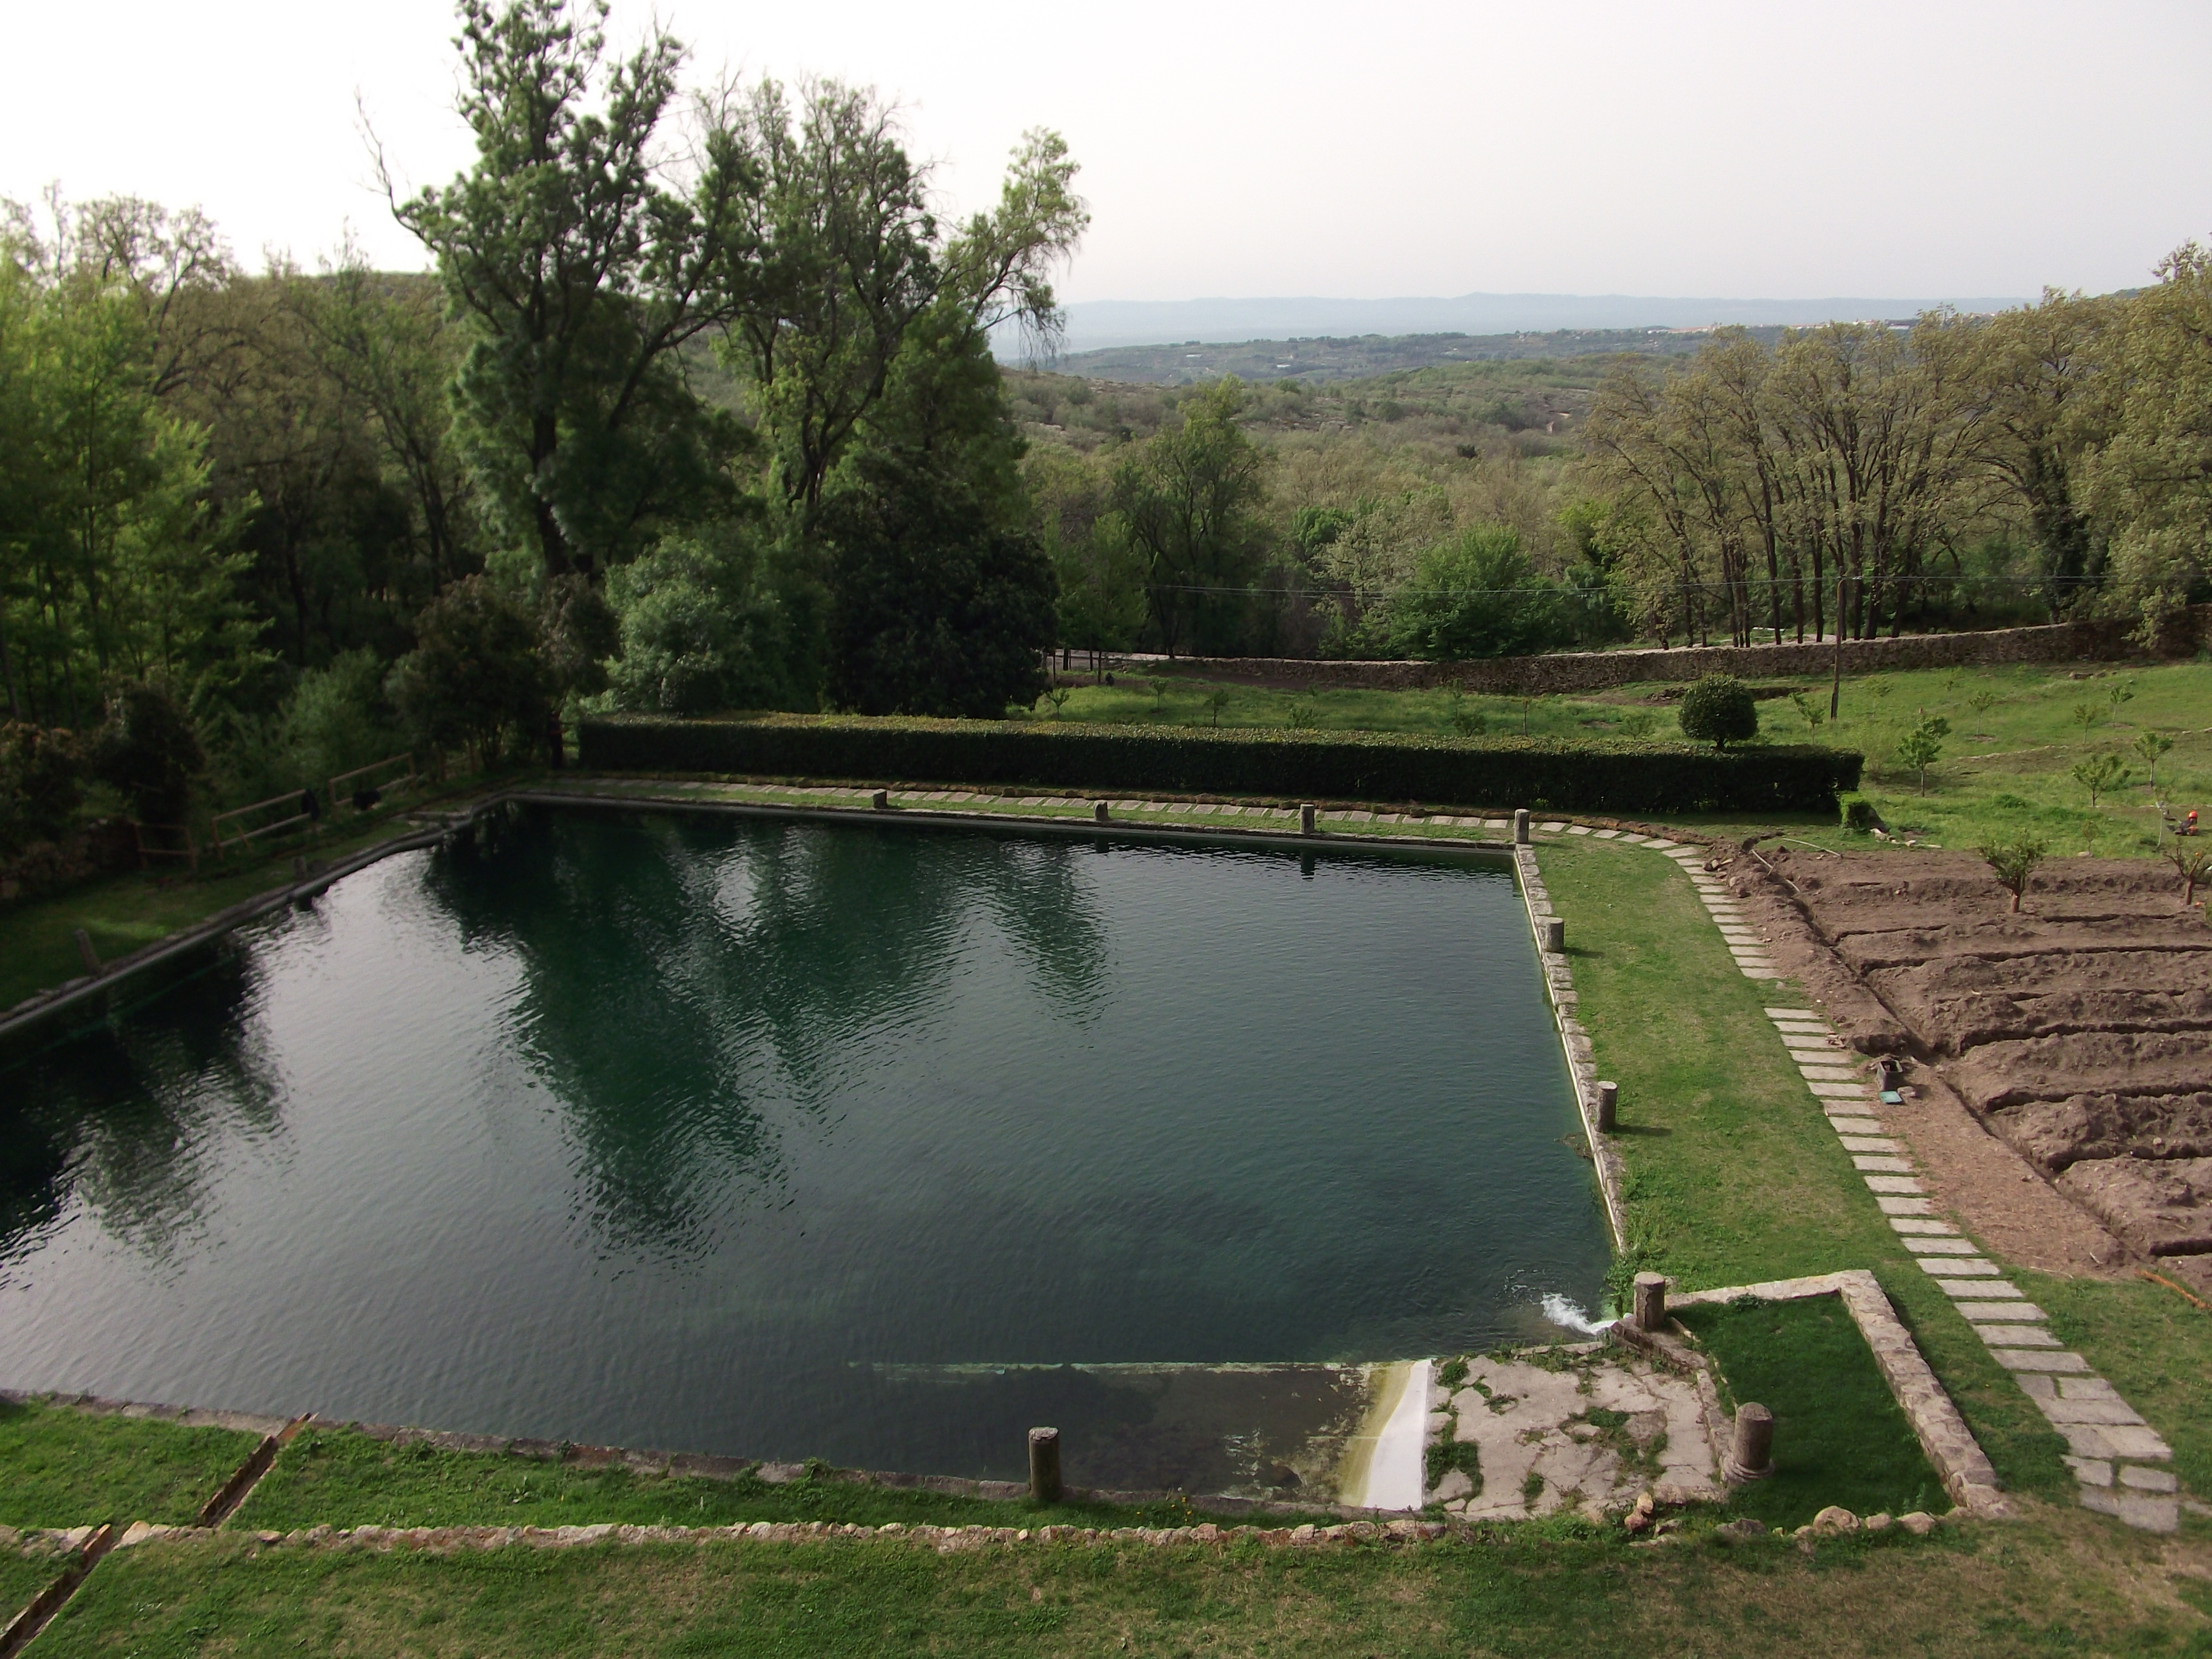 Emperor Charles V's view of gardens and pool from his terrace at |Yuste.